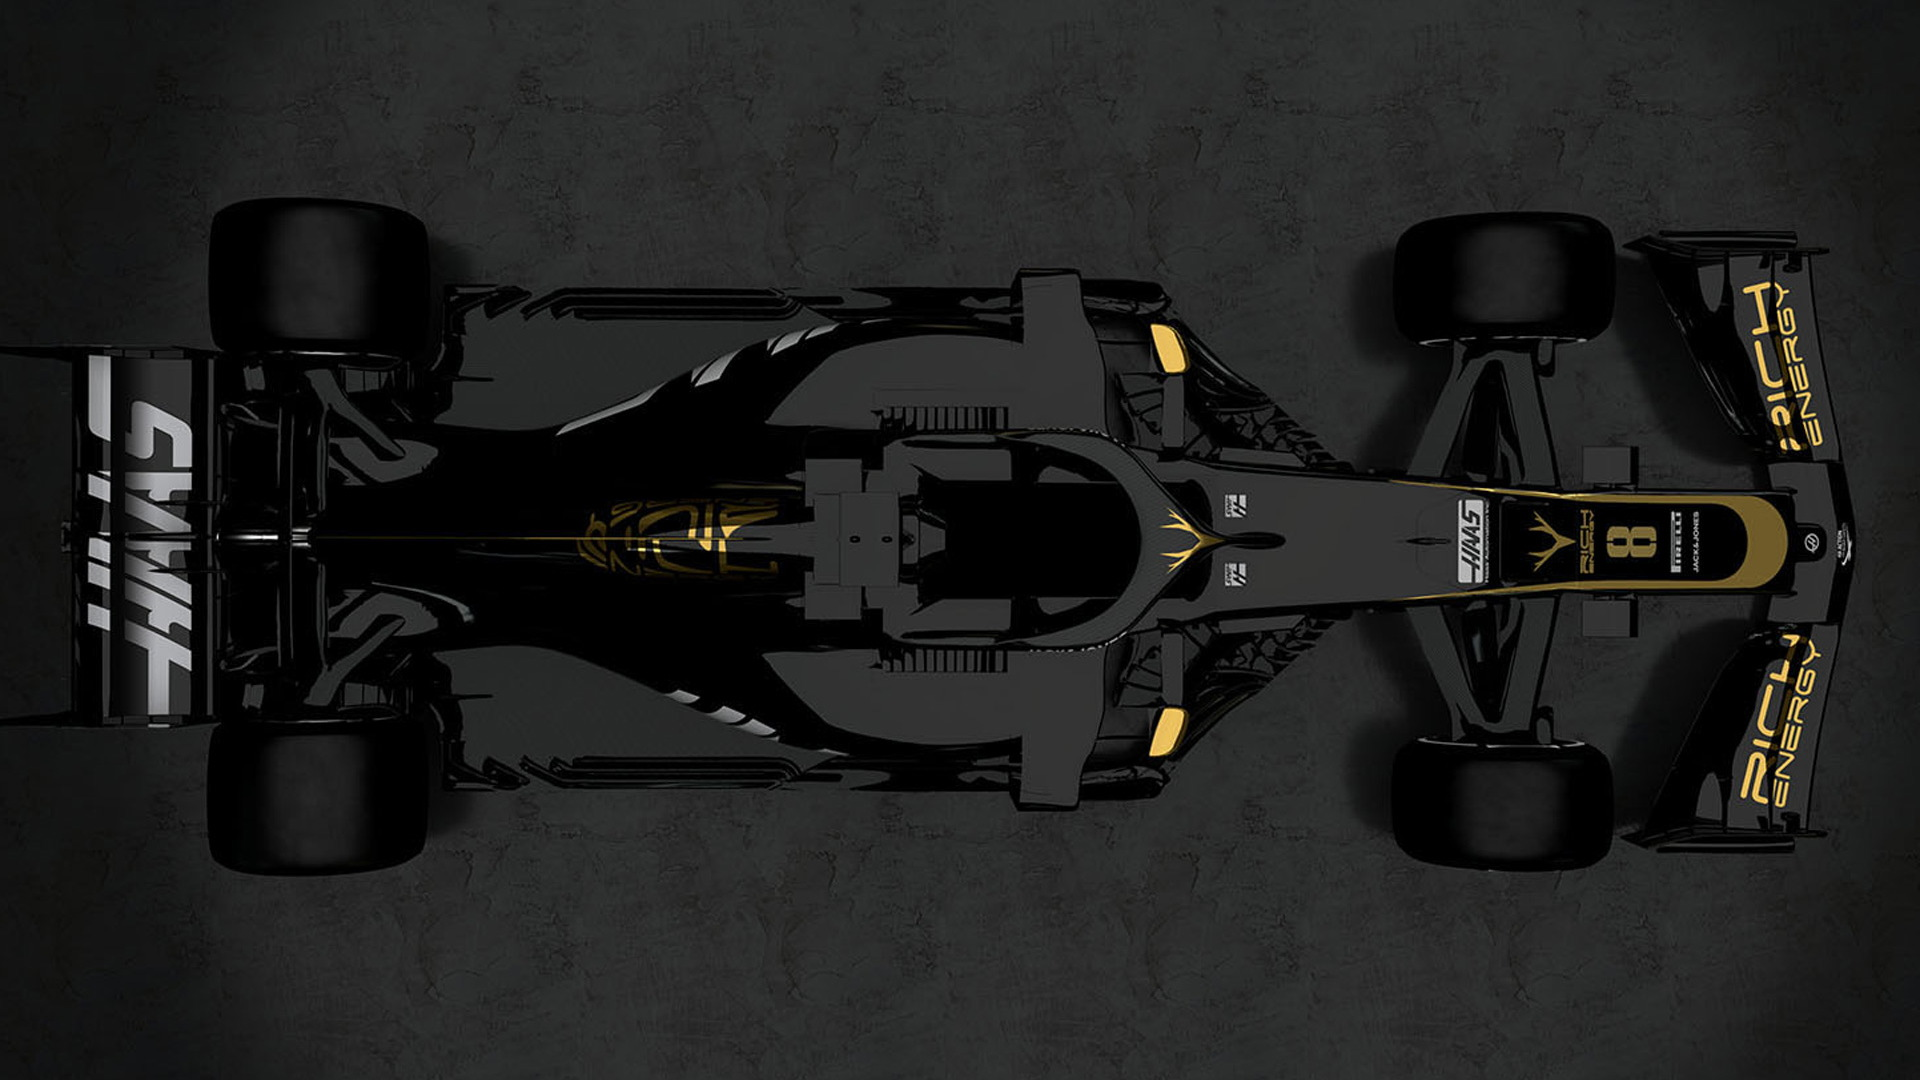 Haas Team2019 F1 Racer Wallpapers: Haas First To Reveal 2019 F1 Car